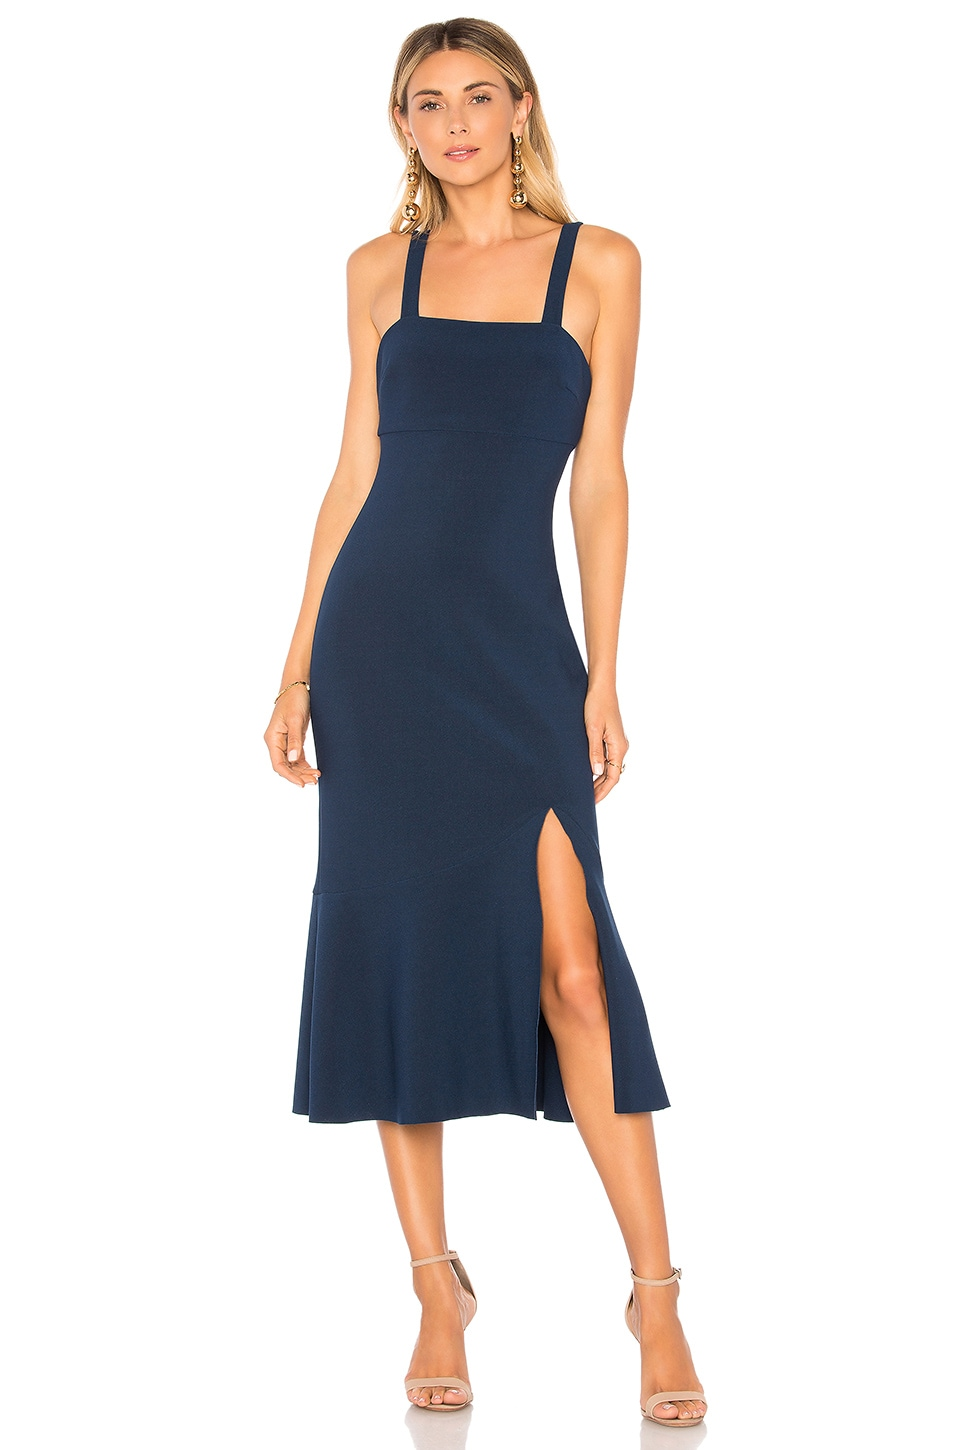 Finders Keepers Tribute Midi Dress in Navy